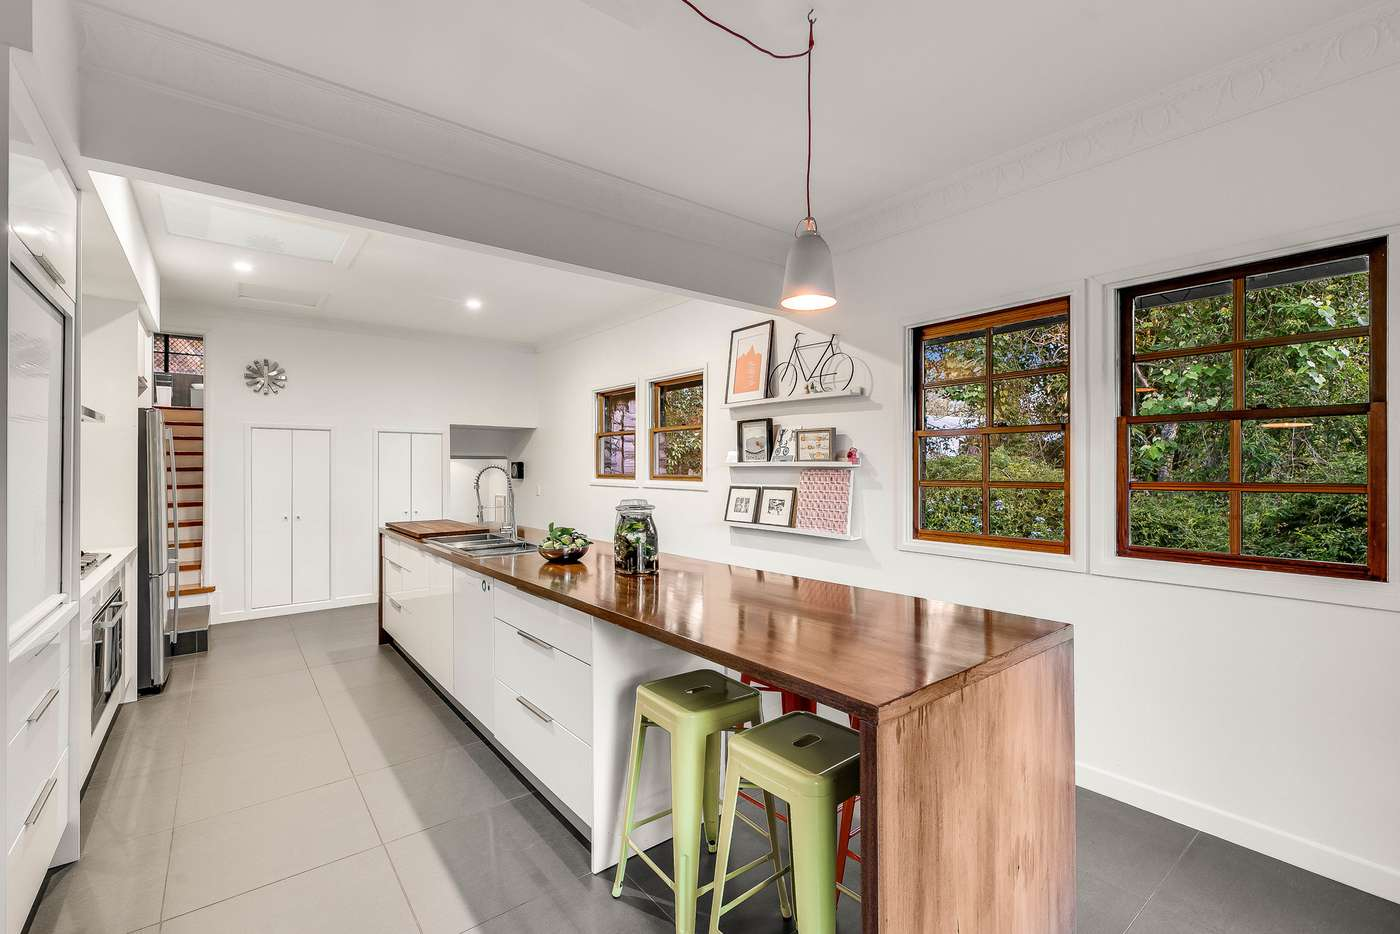 Fifth view of Homely house listing, 6 Hickey Street, East Toowoomba QLD 4350